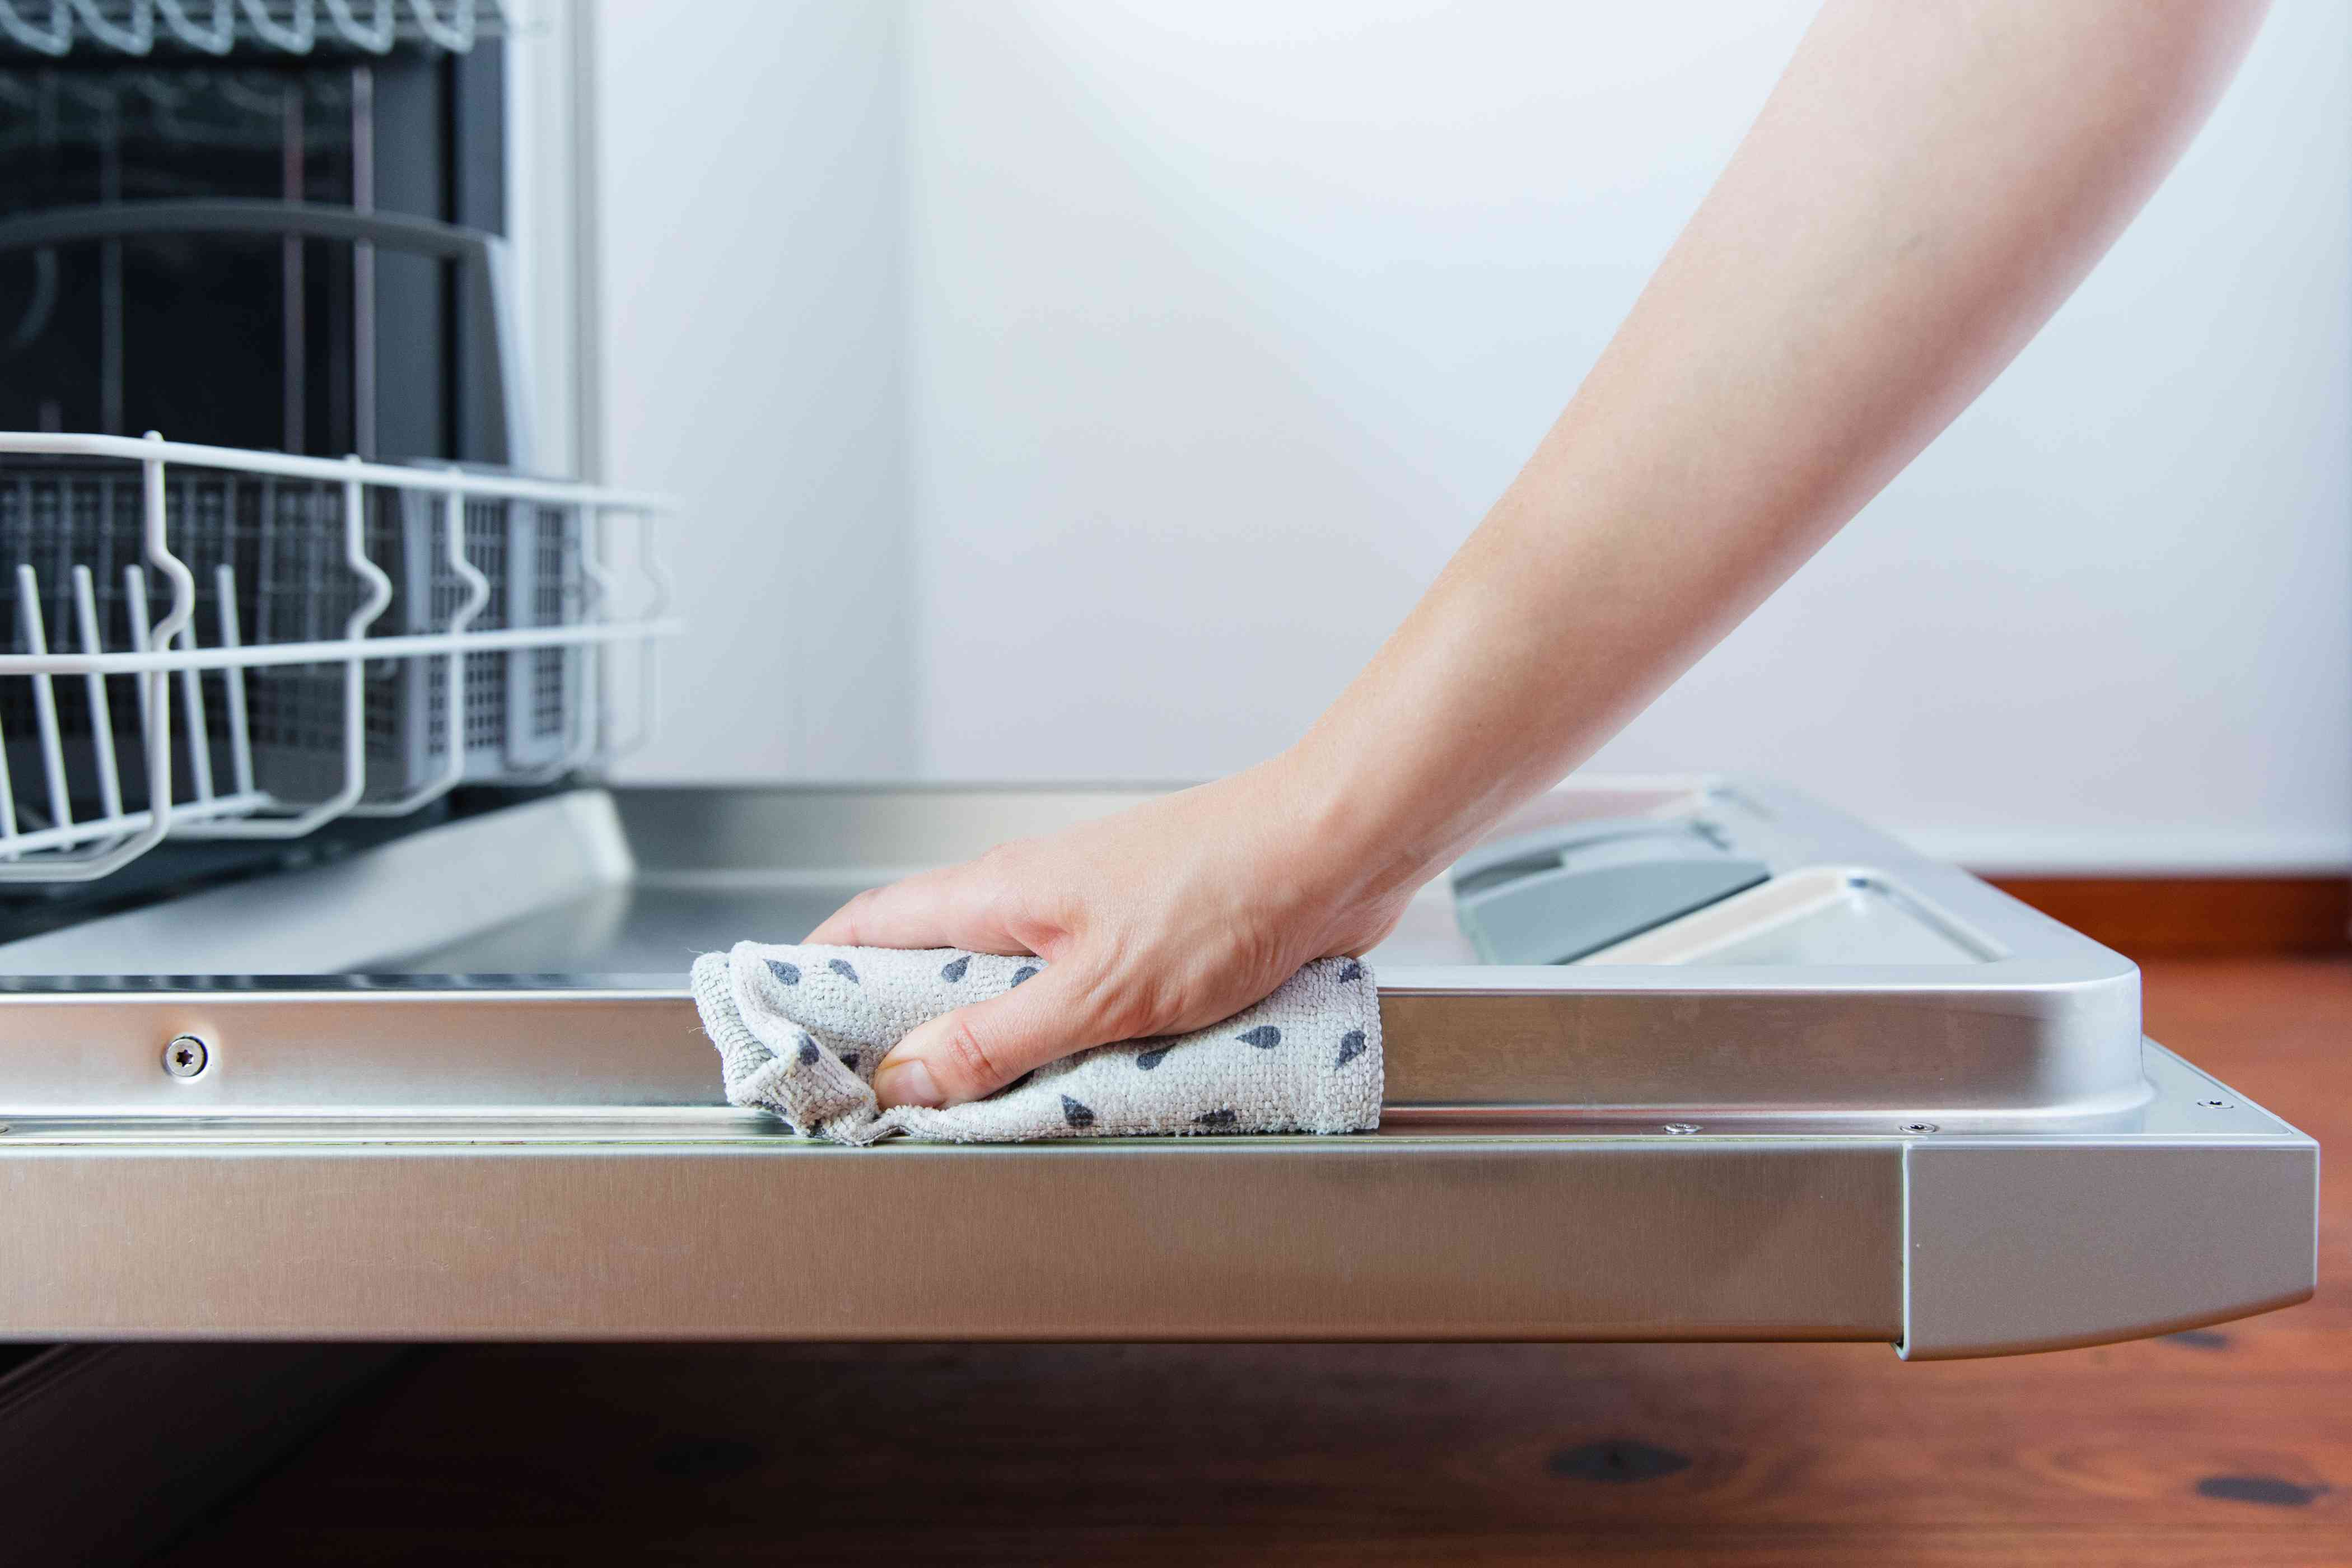 cleaning the dishwasher